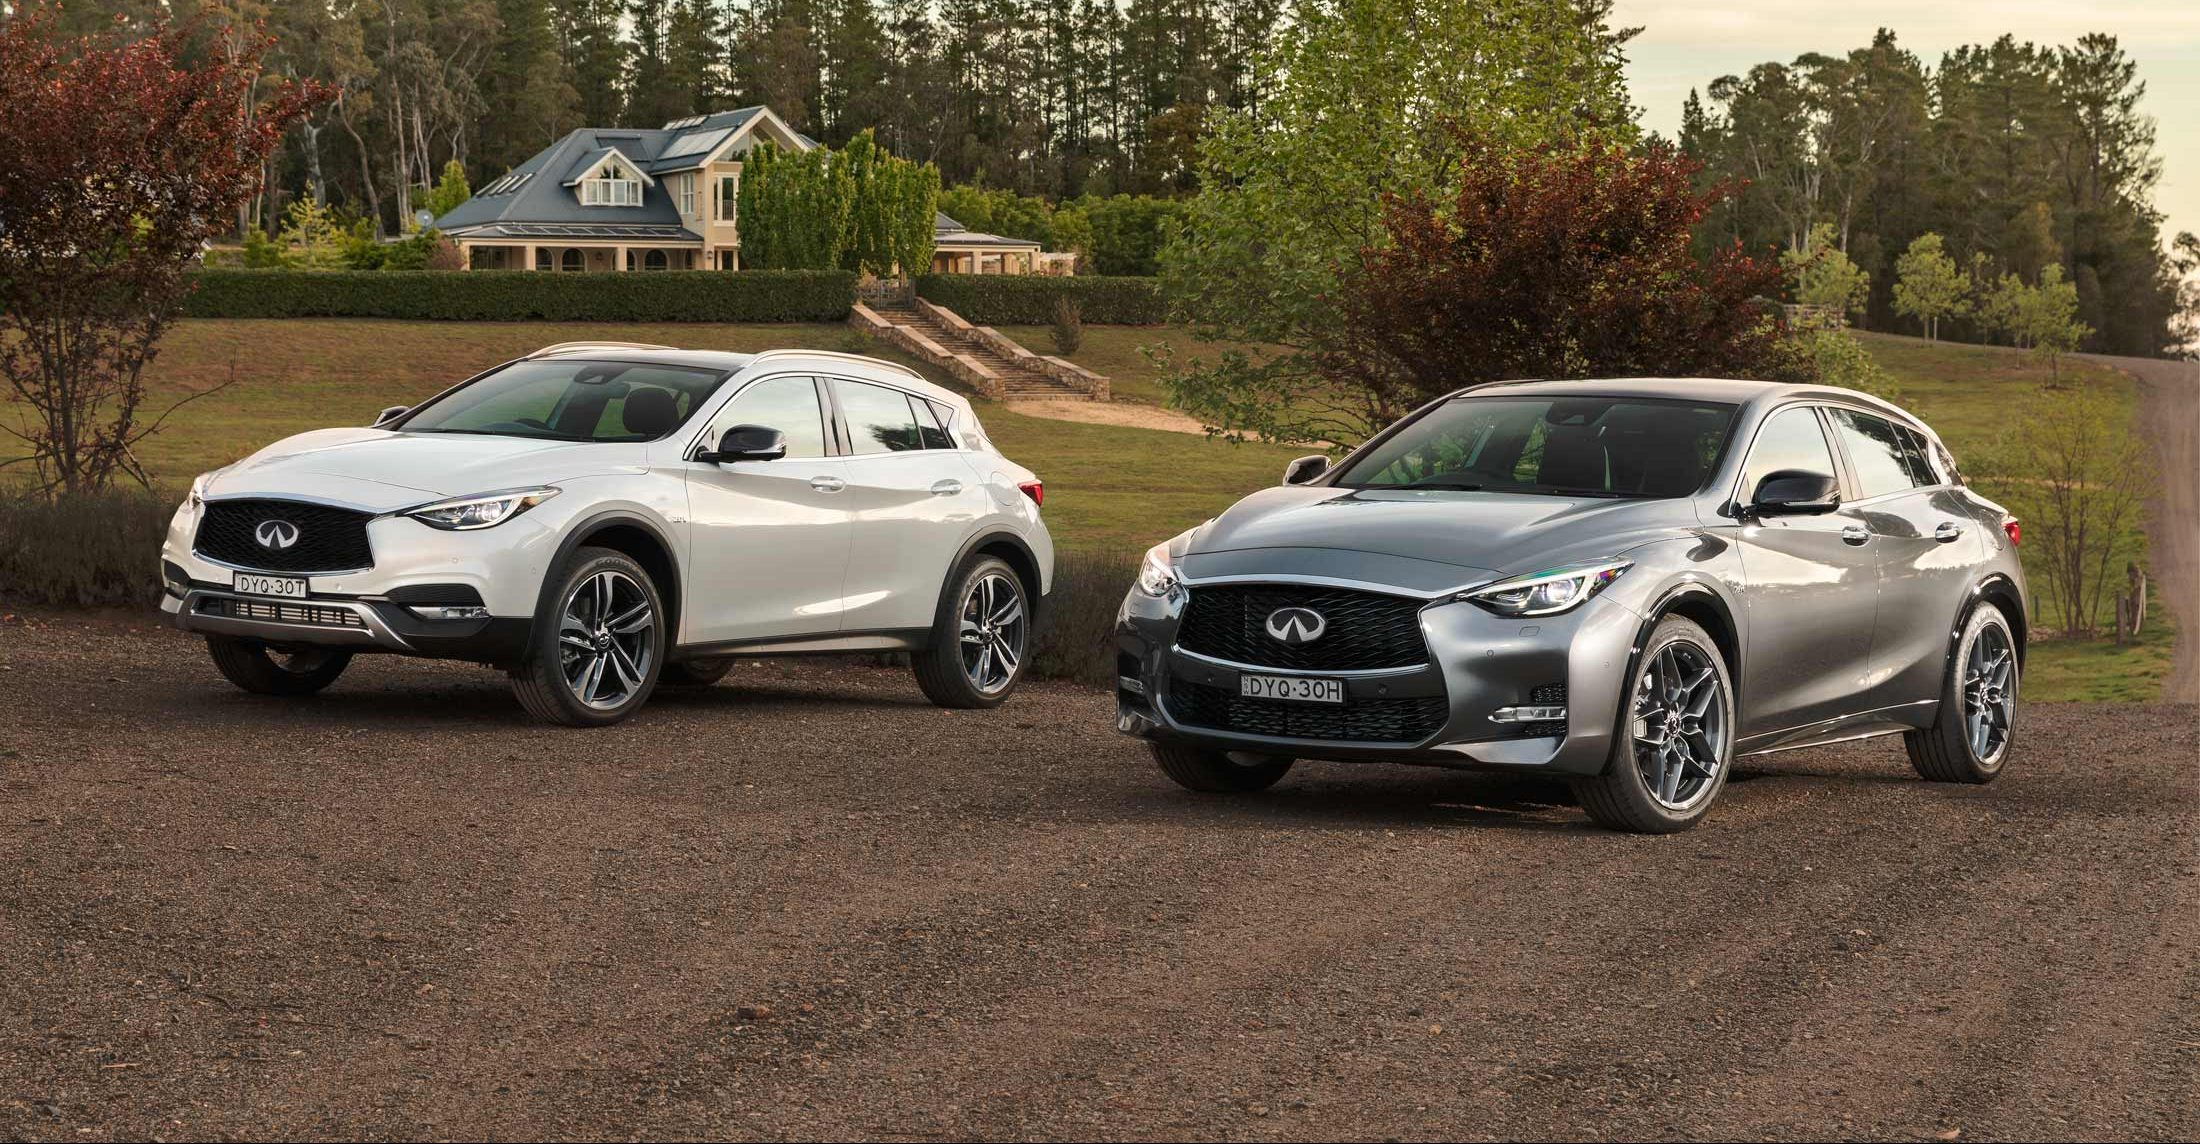 Infiniti Cars: Q30 and QX30 7